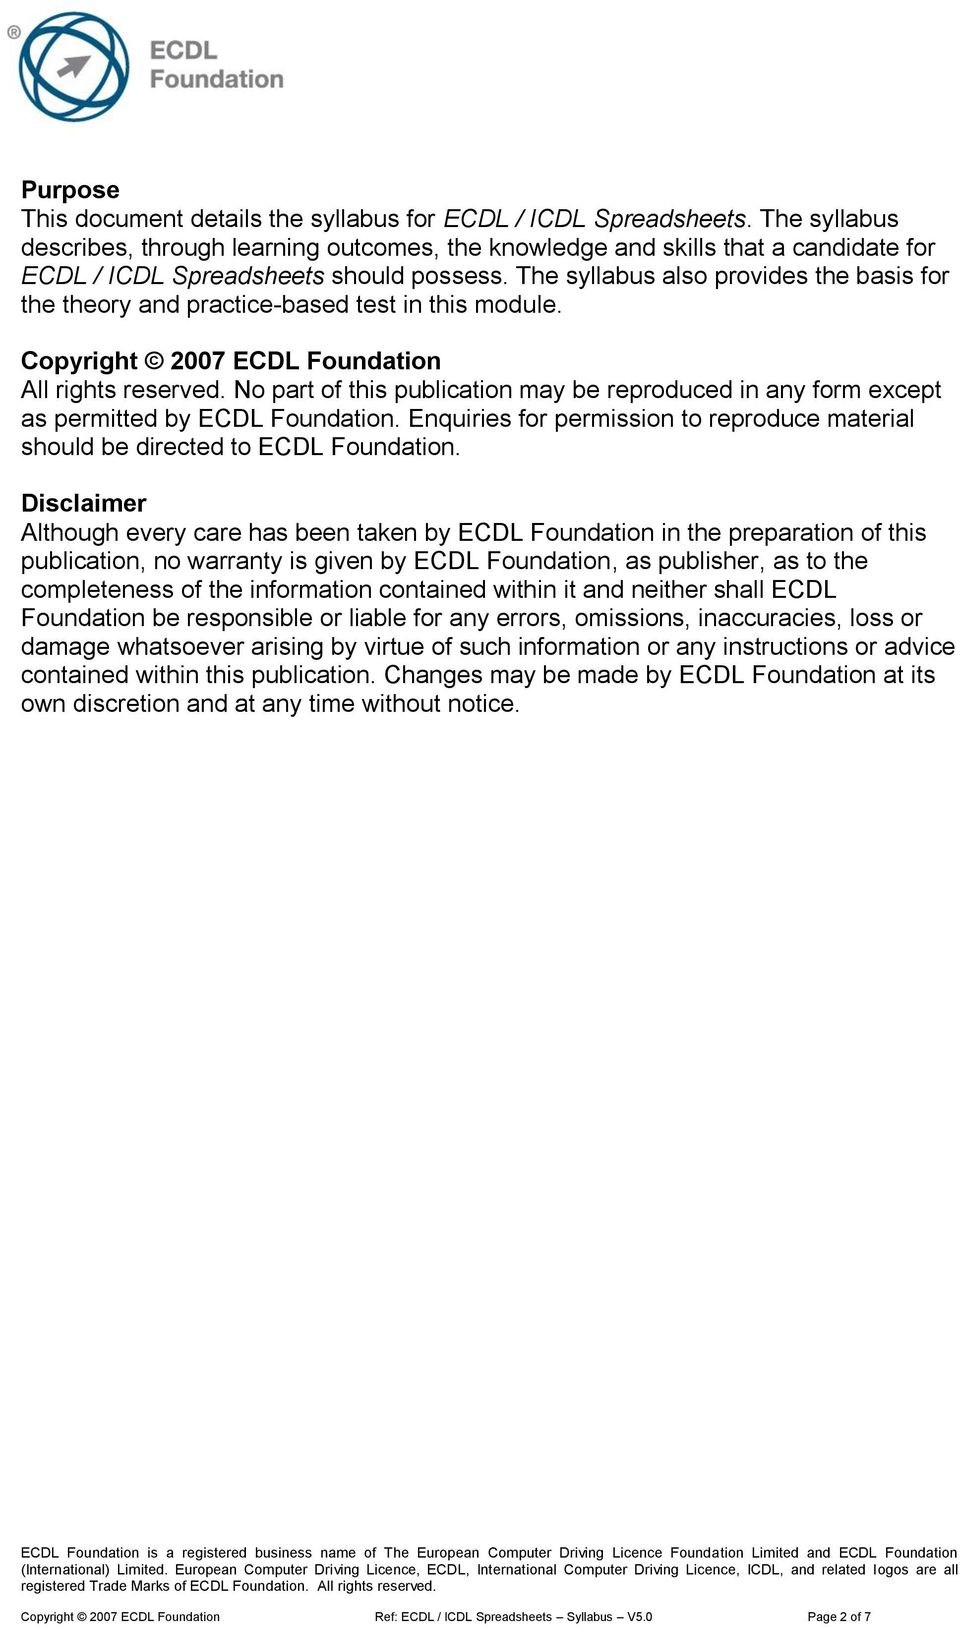 The syllabus also provides the basis for the theory and practice-based test in this module. Copyright 2007 ECDL Foundation All rights reserved.